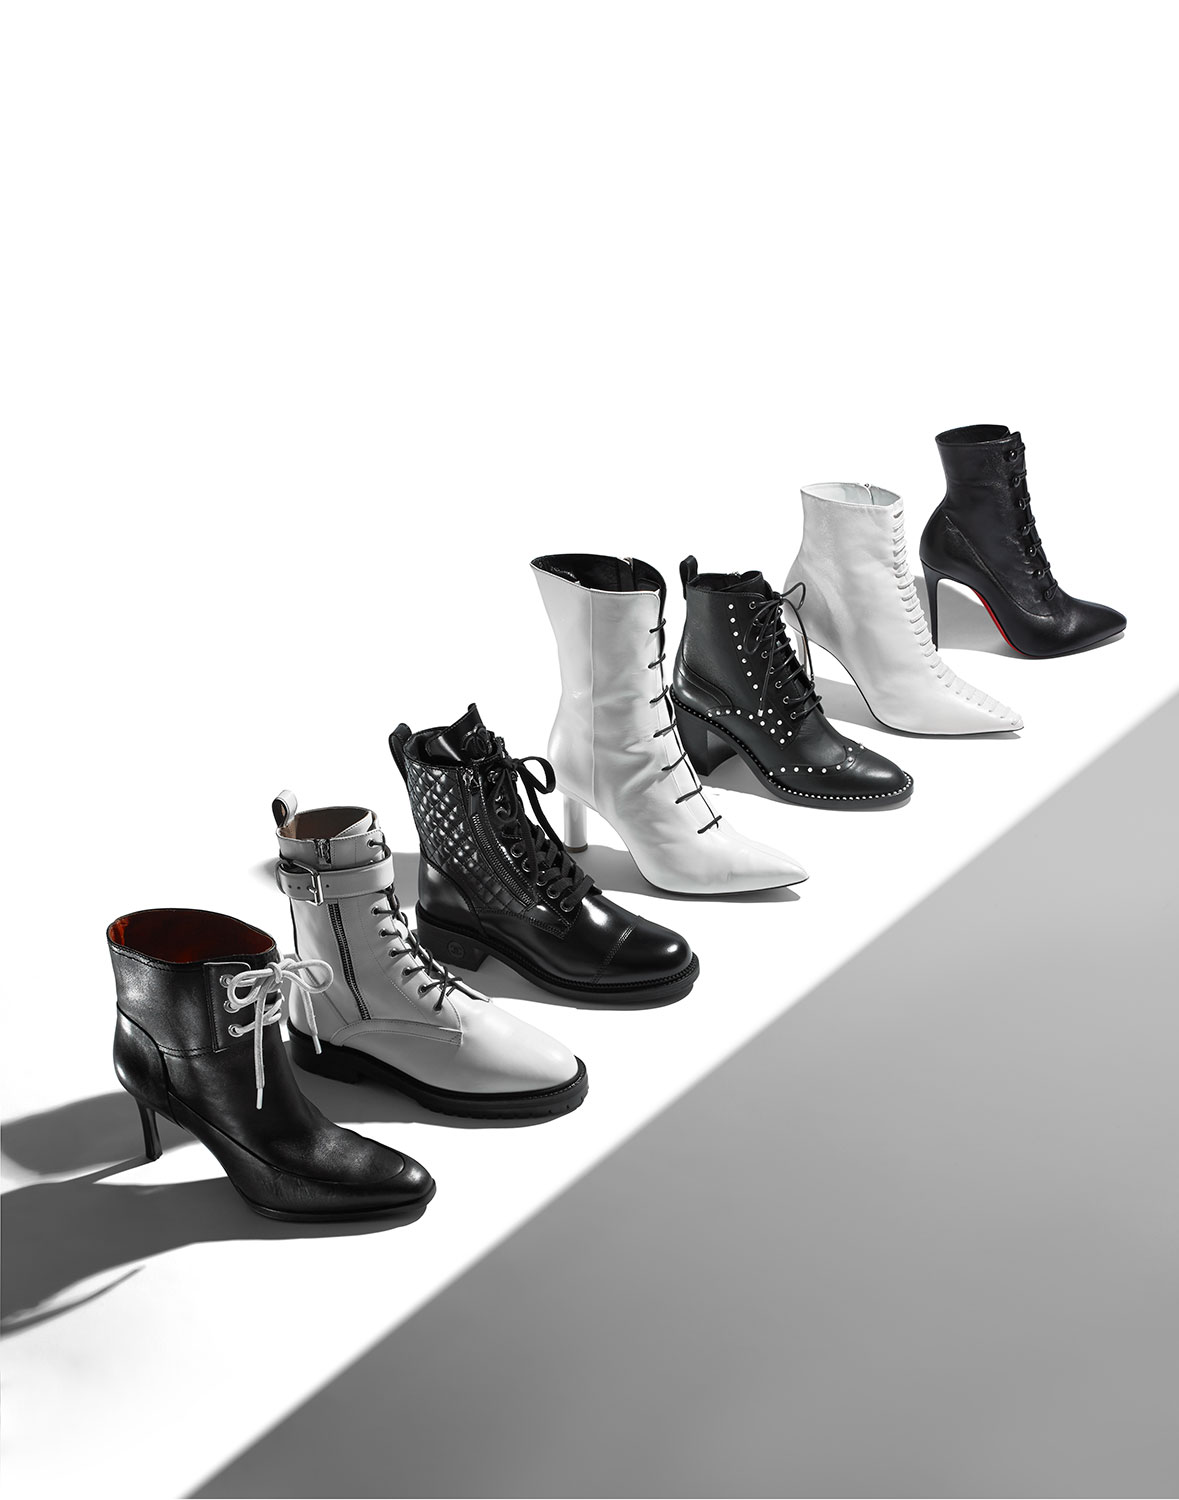 9_10-Shoes-FallWinter_4Seasons